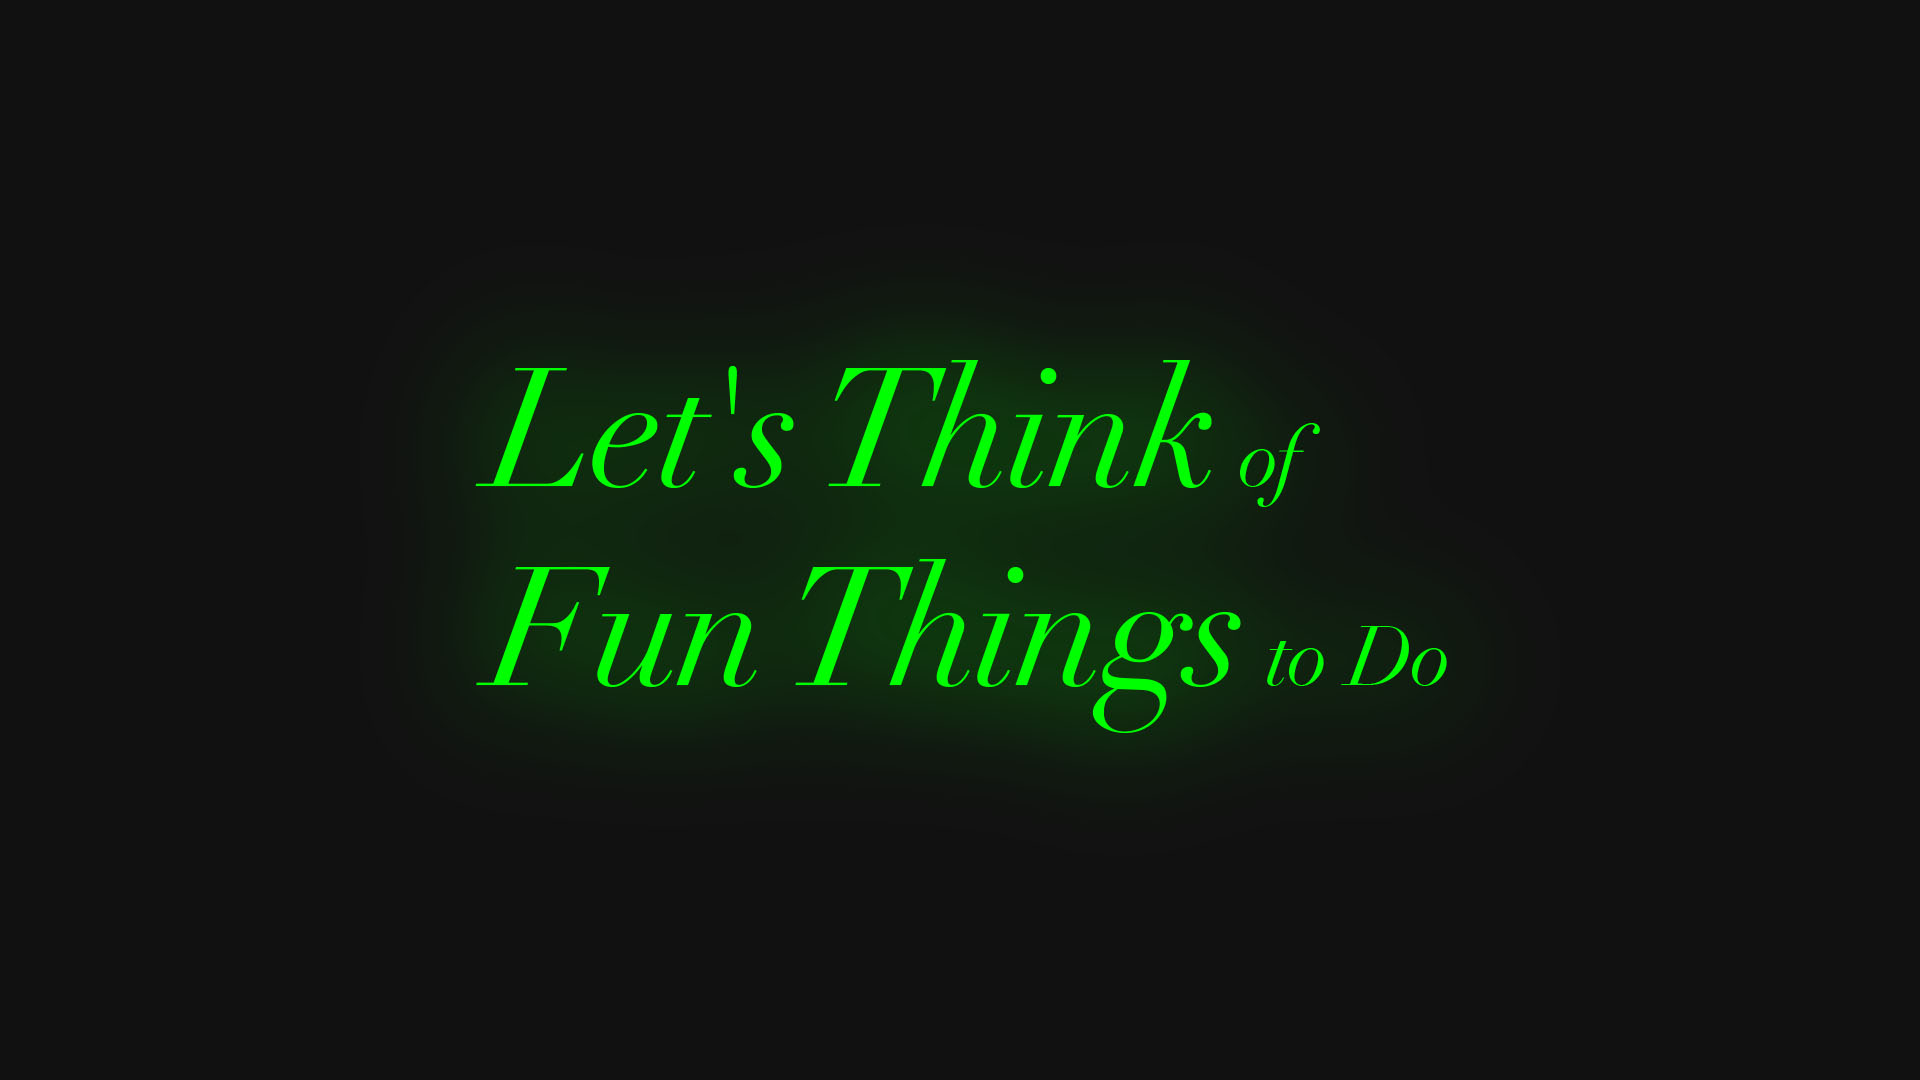 Let's Think of Fun Things to Do